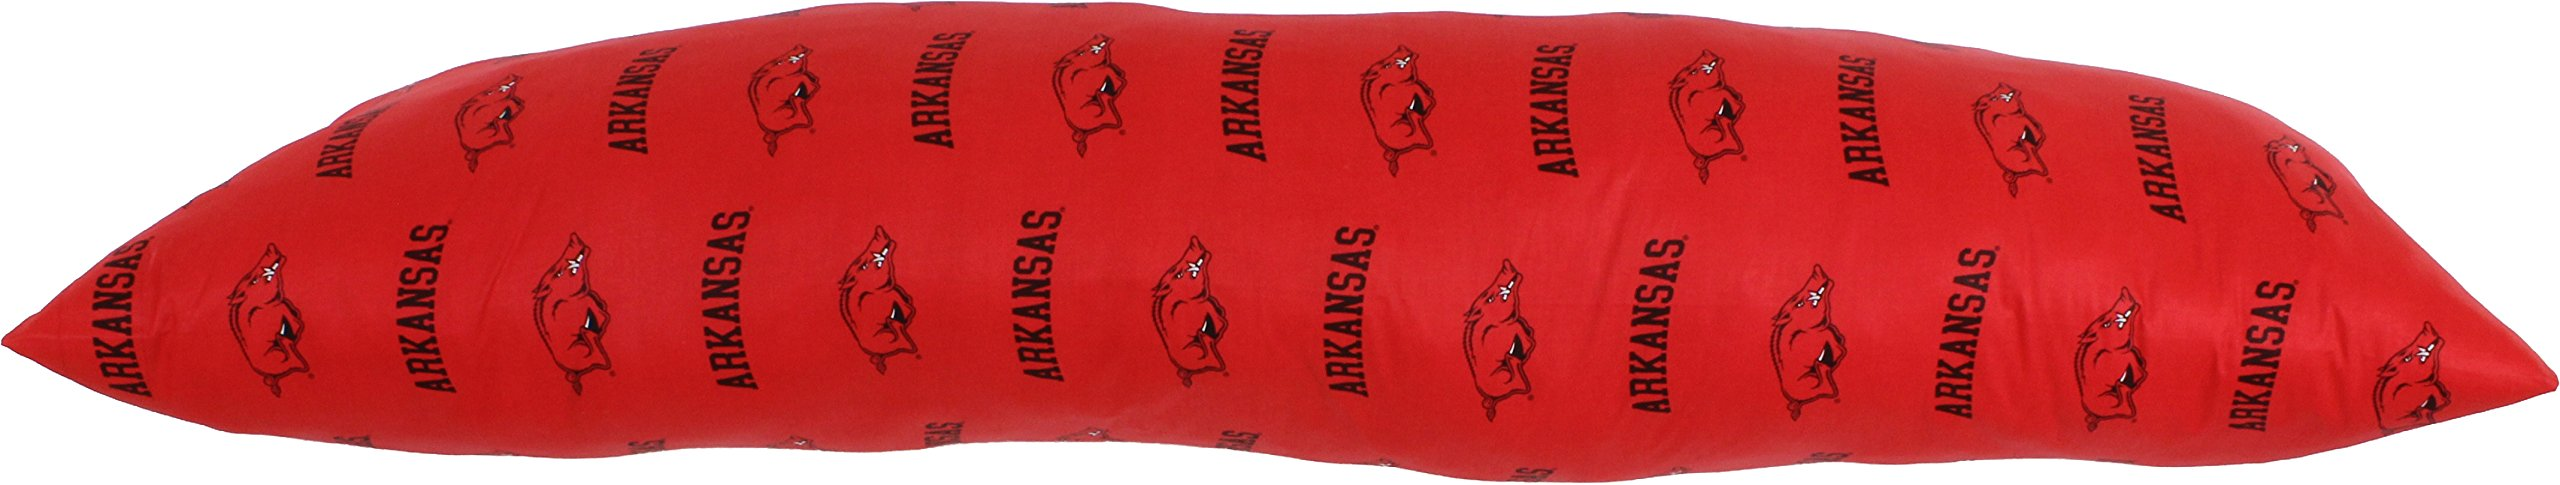 College Covers Arkansas Razorbacks Printed Body Pillow, 20'' x 60'' by College Covers (Image #3)